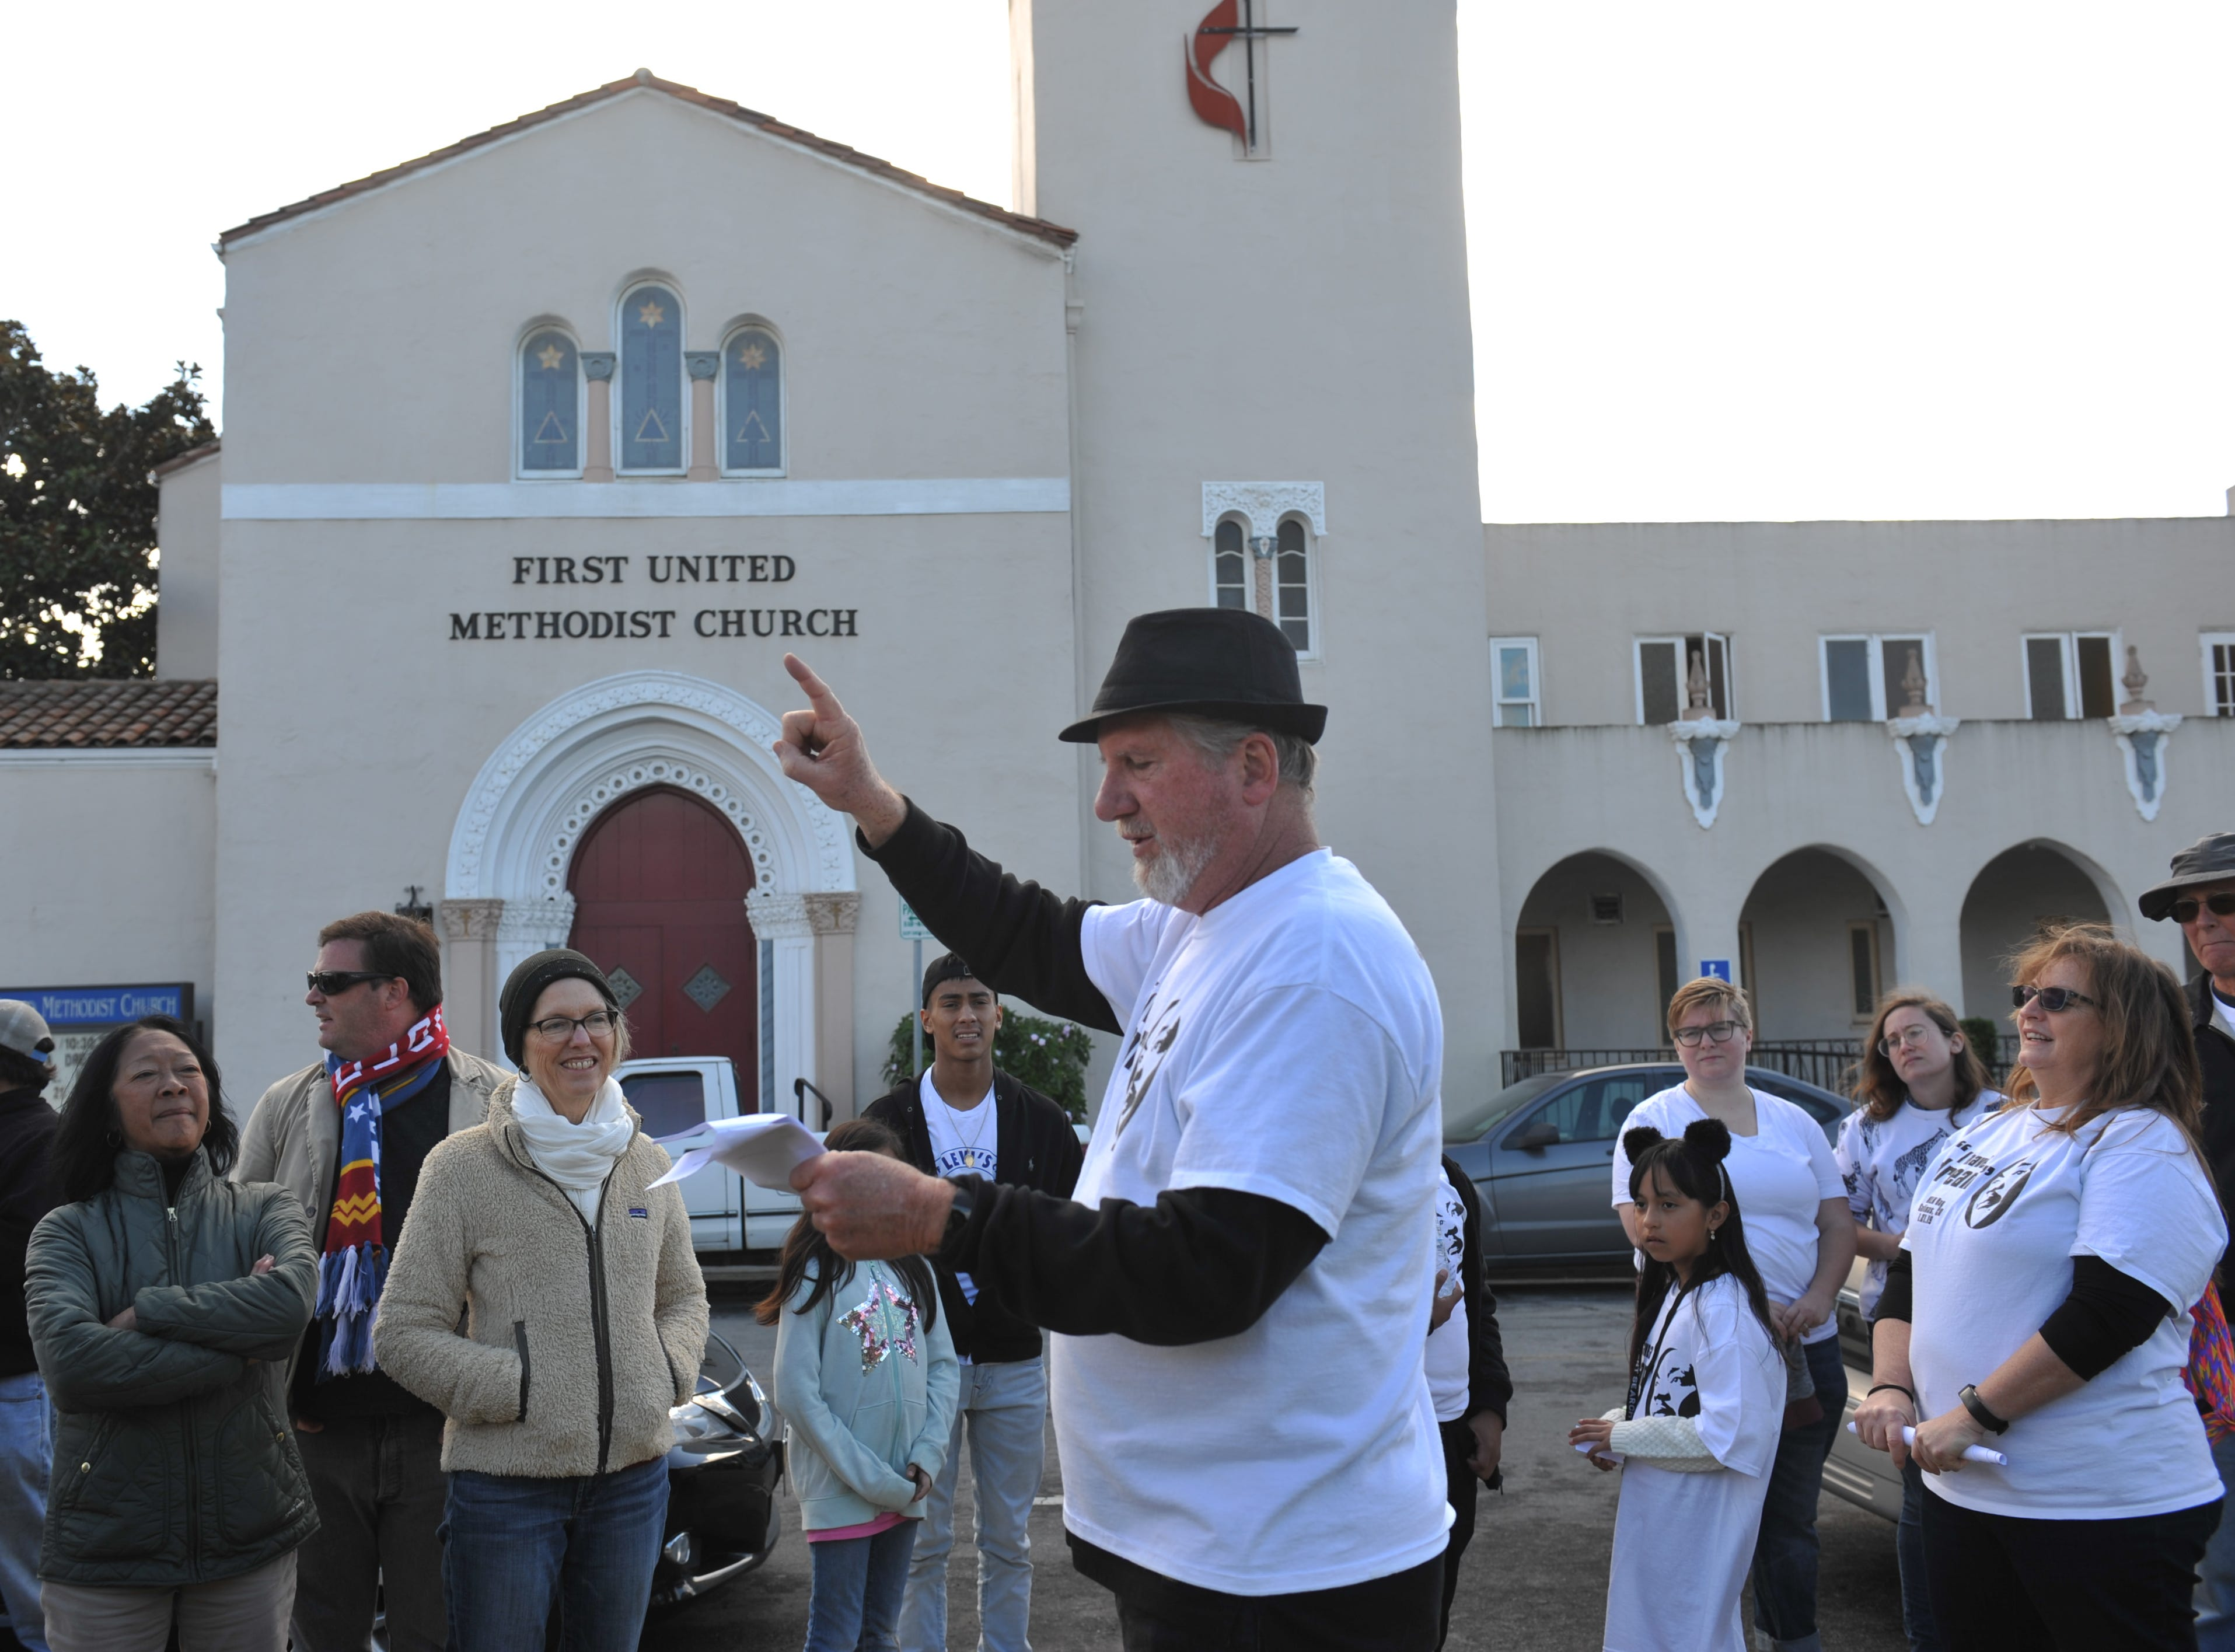 The Rev. Steve Lundin provides closing statements to end the march across from the Salinas First United Methodist Church.